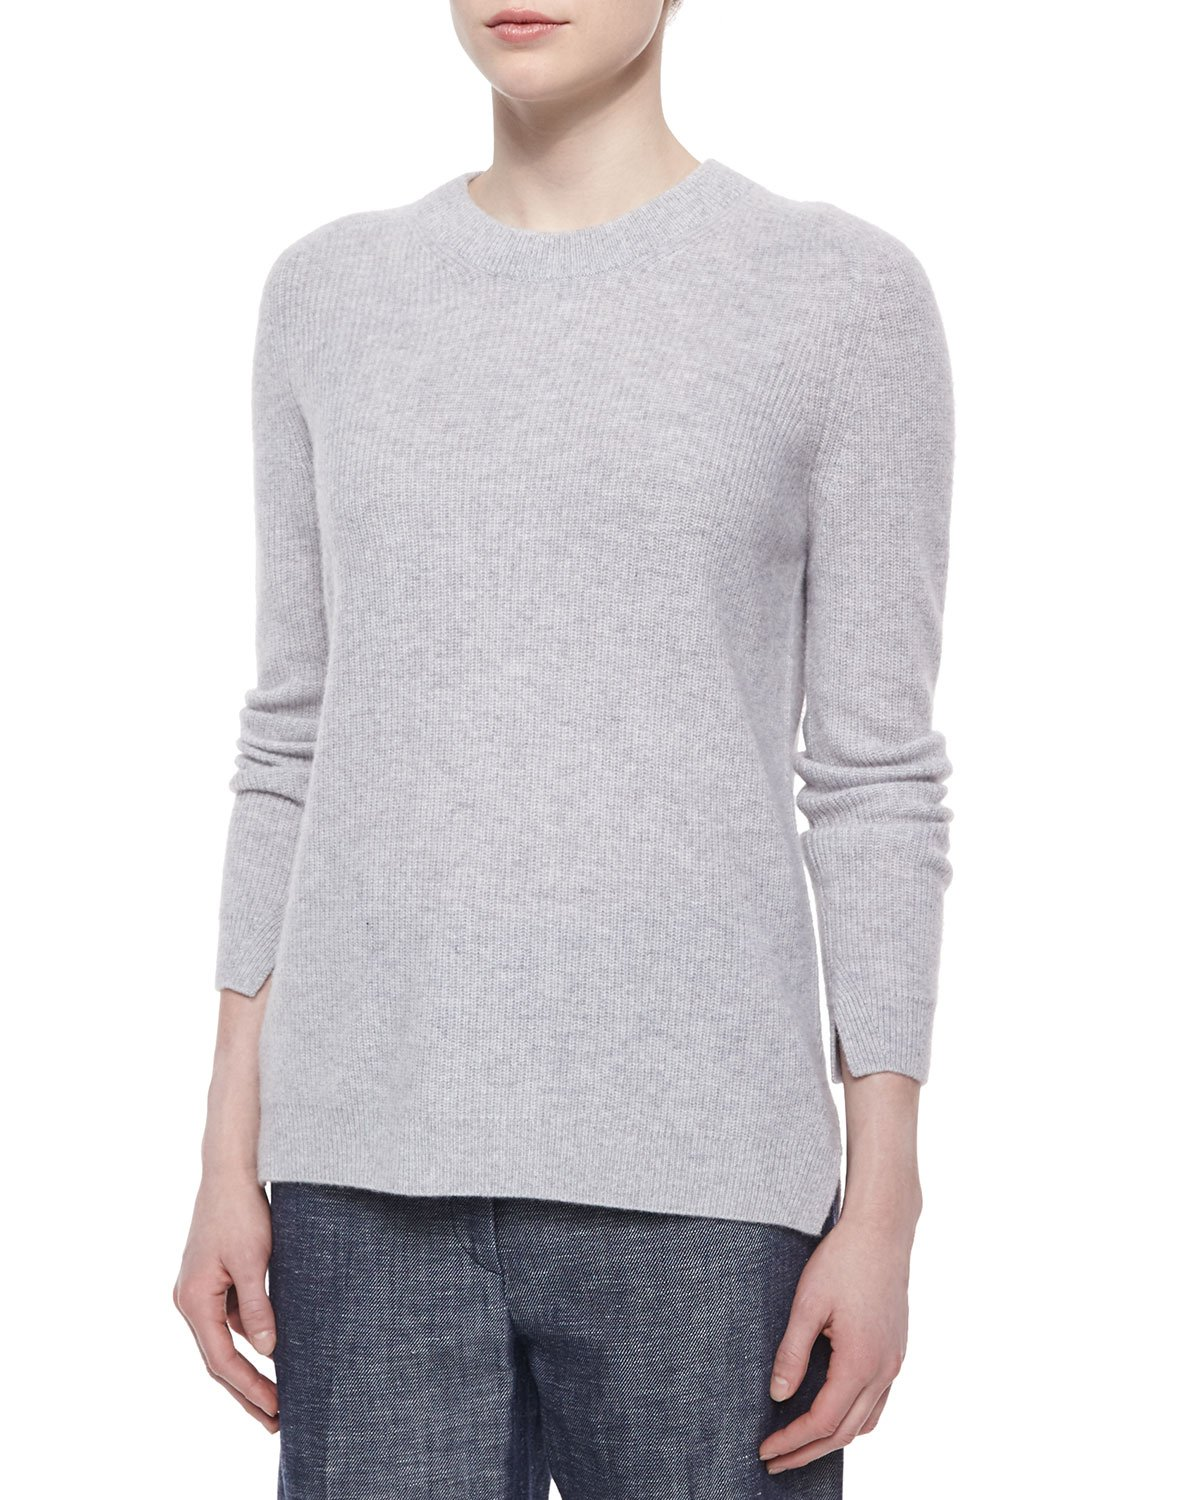 Rag & bone Cashmere Valentina Ribbed Sweater in Gray | Lyst